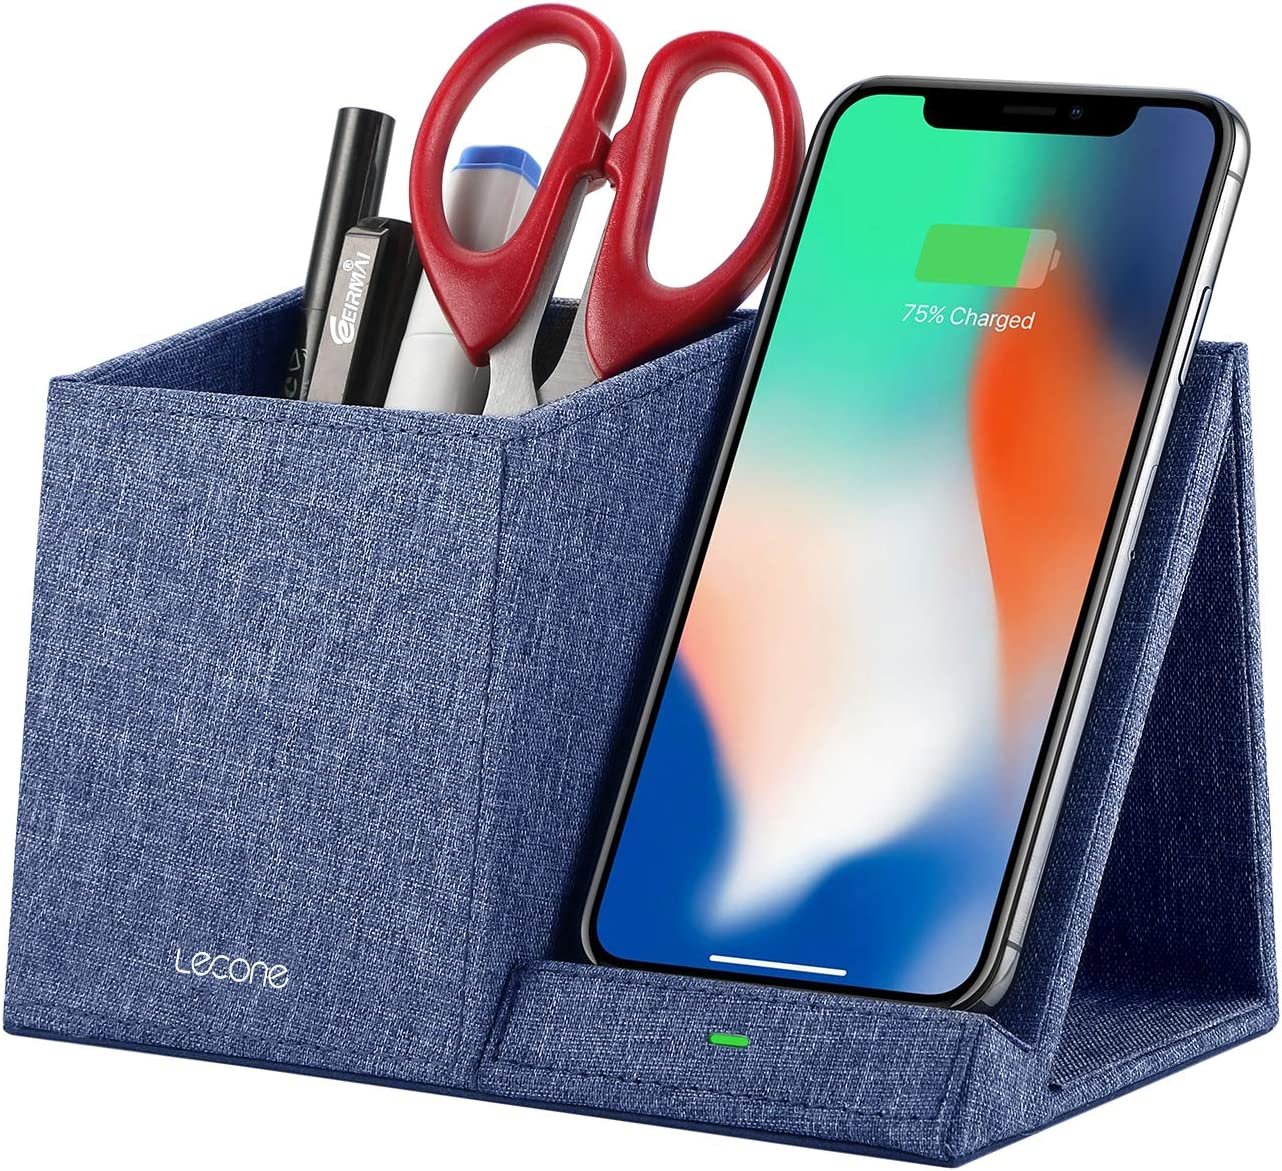 Lecone 10W Fast Wireless Charger with Desk Organizer Qi Certified Fabric Induction Charger Stand Pen Pencil Holder Compatible iPhone SE 2020/11/Xs MAX/XR/XS/X/8/8, Samsung S20/S10/S9/S8/Note 10, Blue